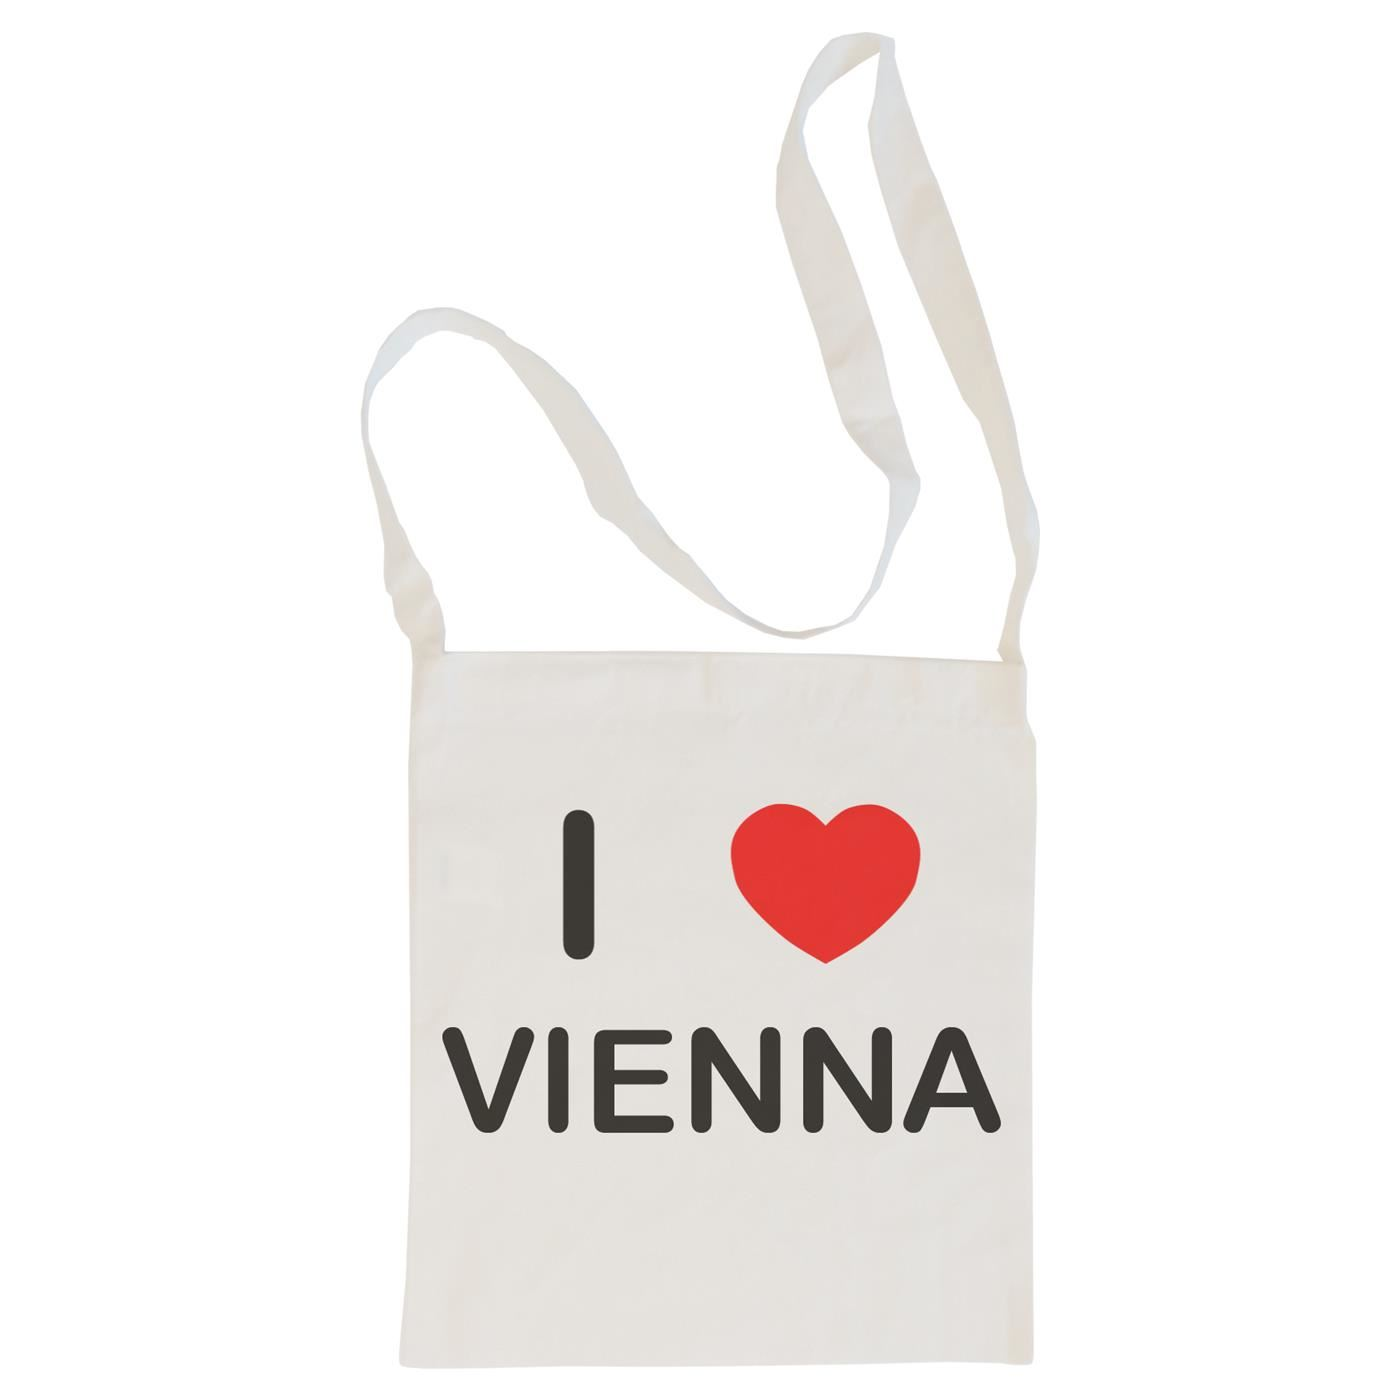 I Love Vienna - Cotton Bag | Size choice Tote, Shopper or Sling